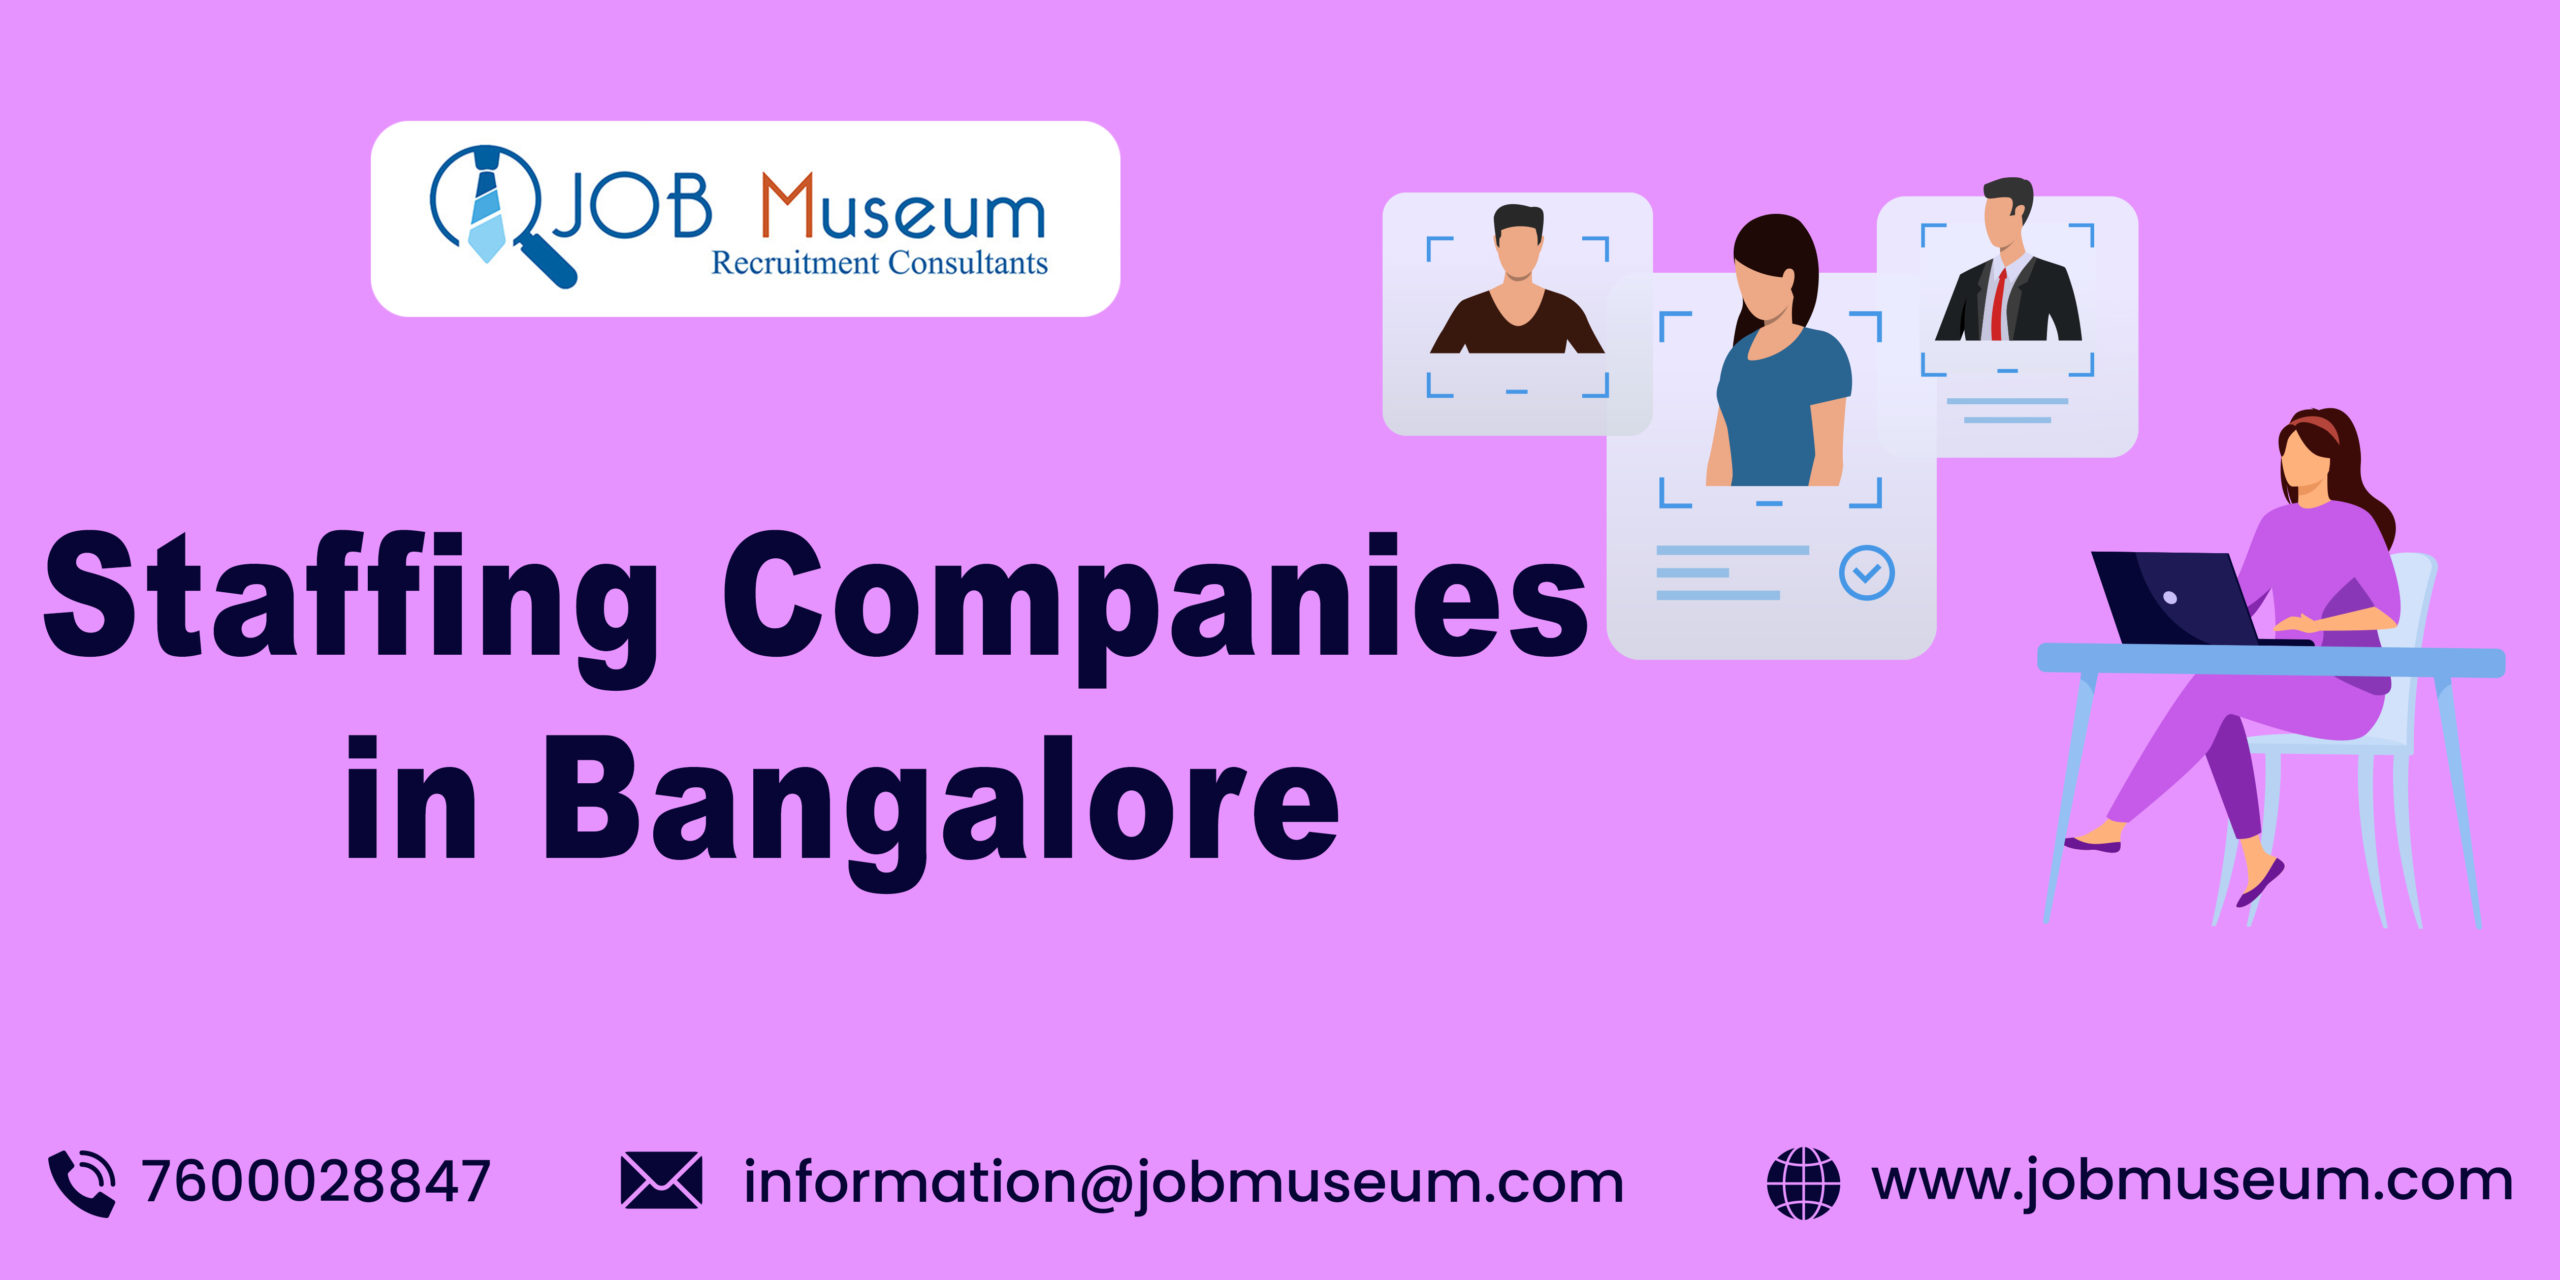 IT staffing companies in Bangalore